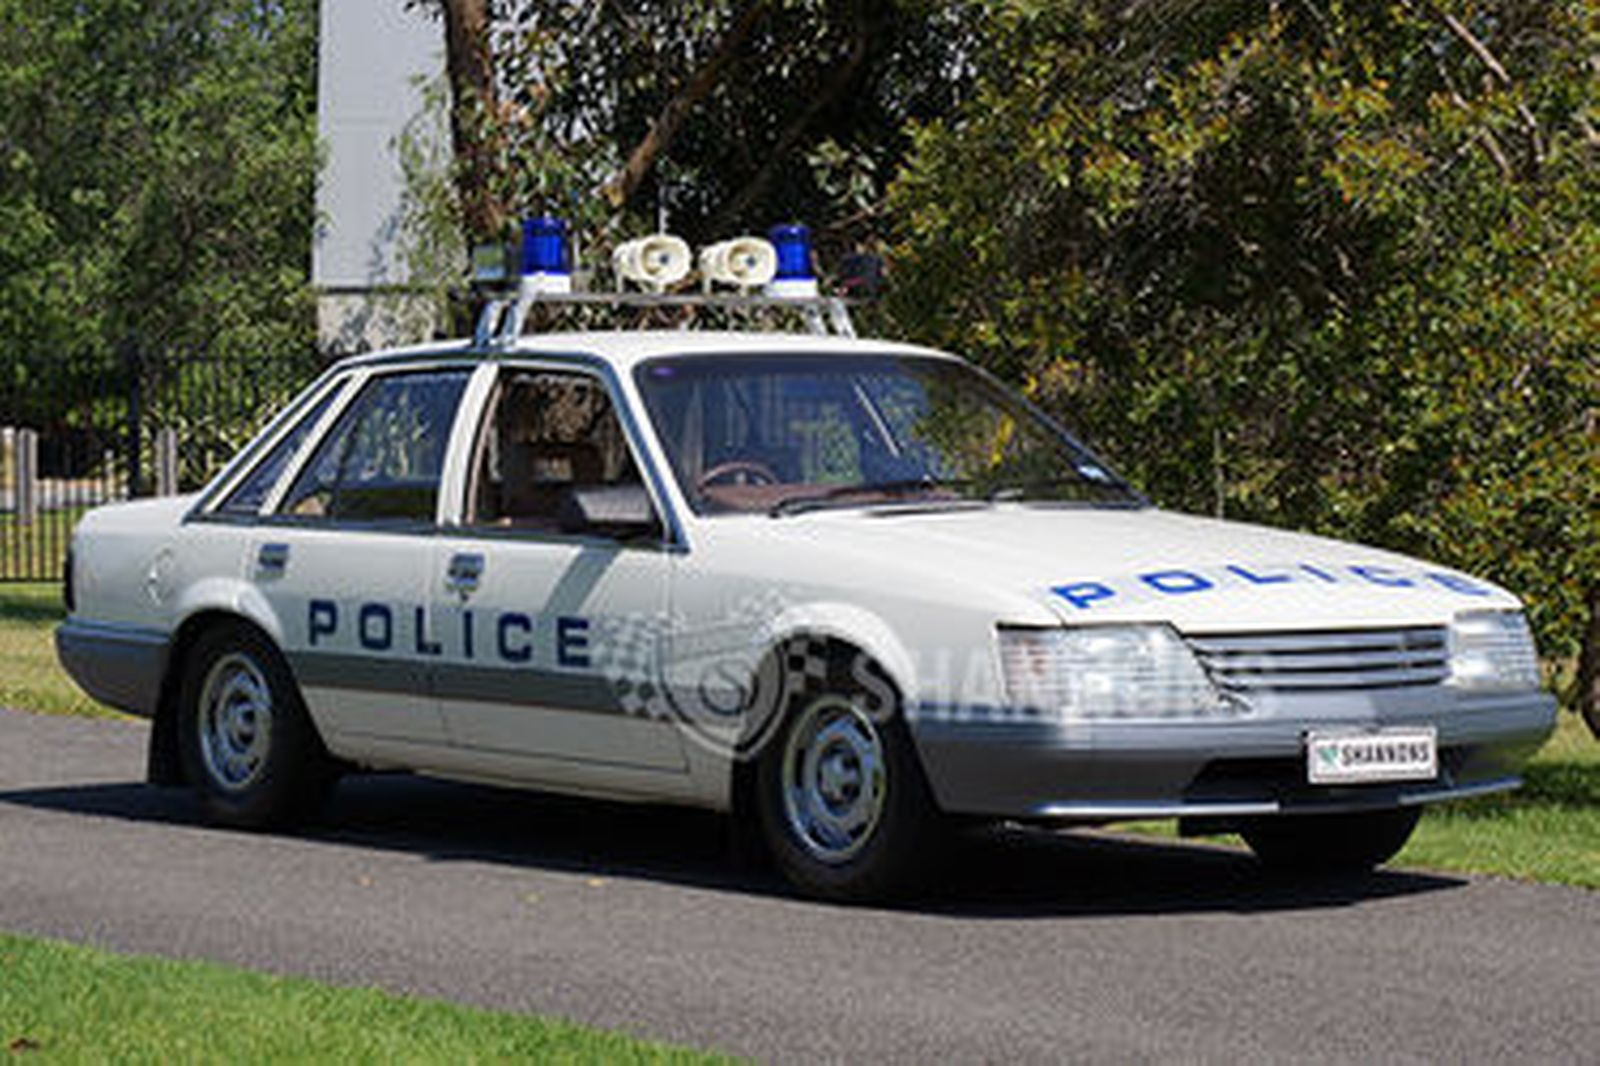 Ex Police Car Auctions >> Holden VK Commodore 'Ex-Police Car' 308 V8 Sedan Auctions - Lot 26 - Shannons